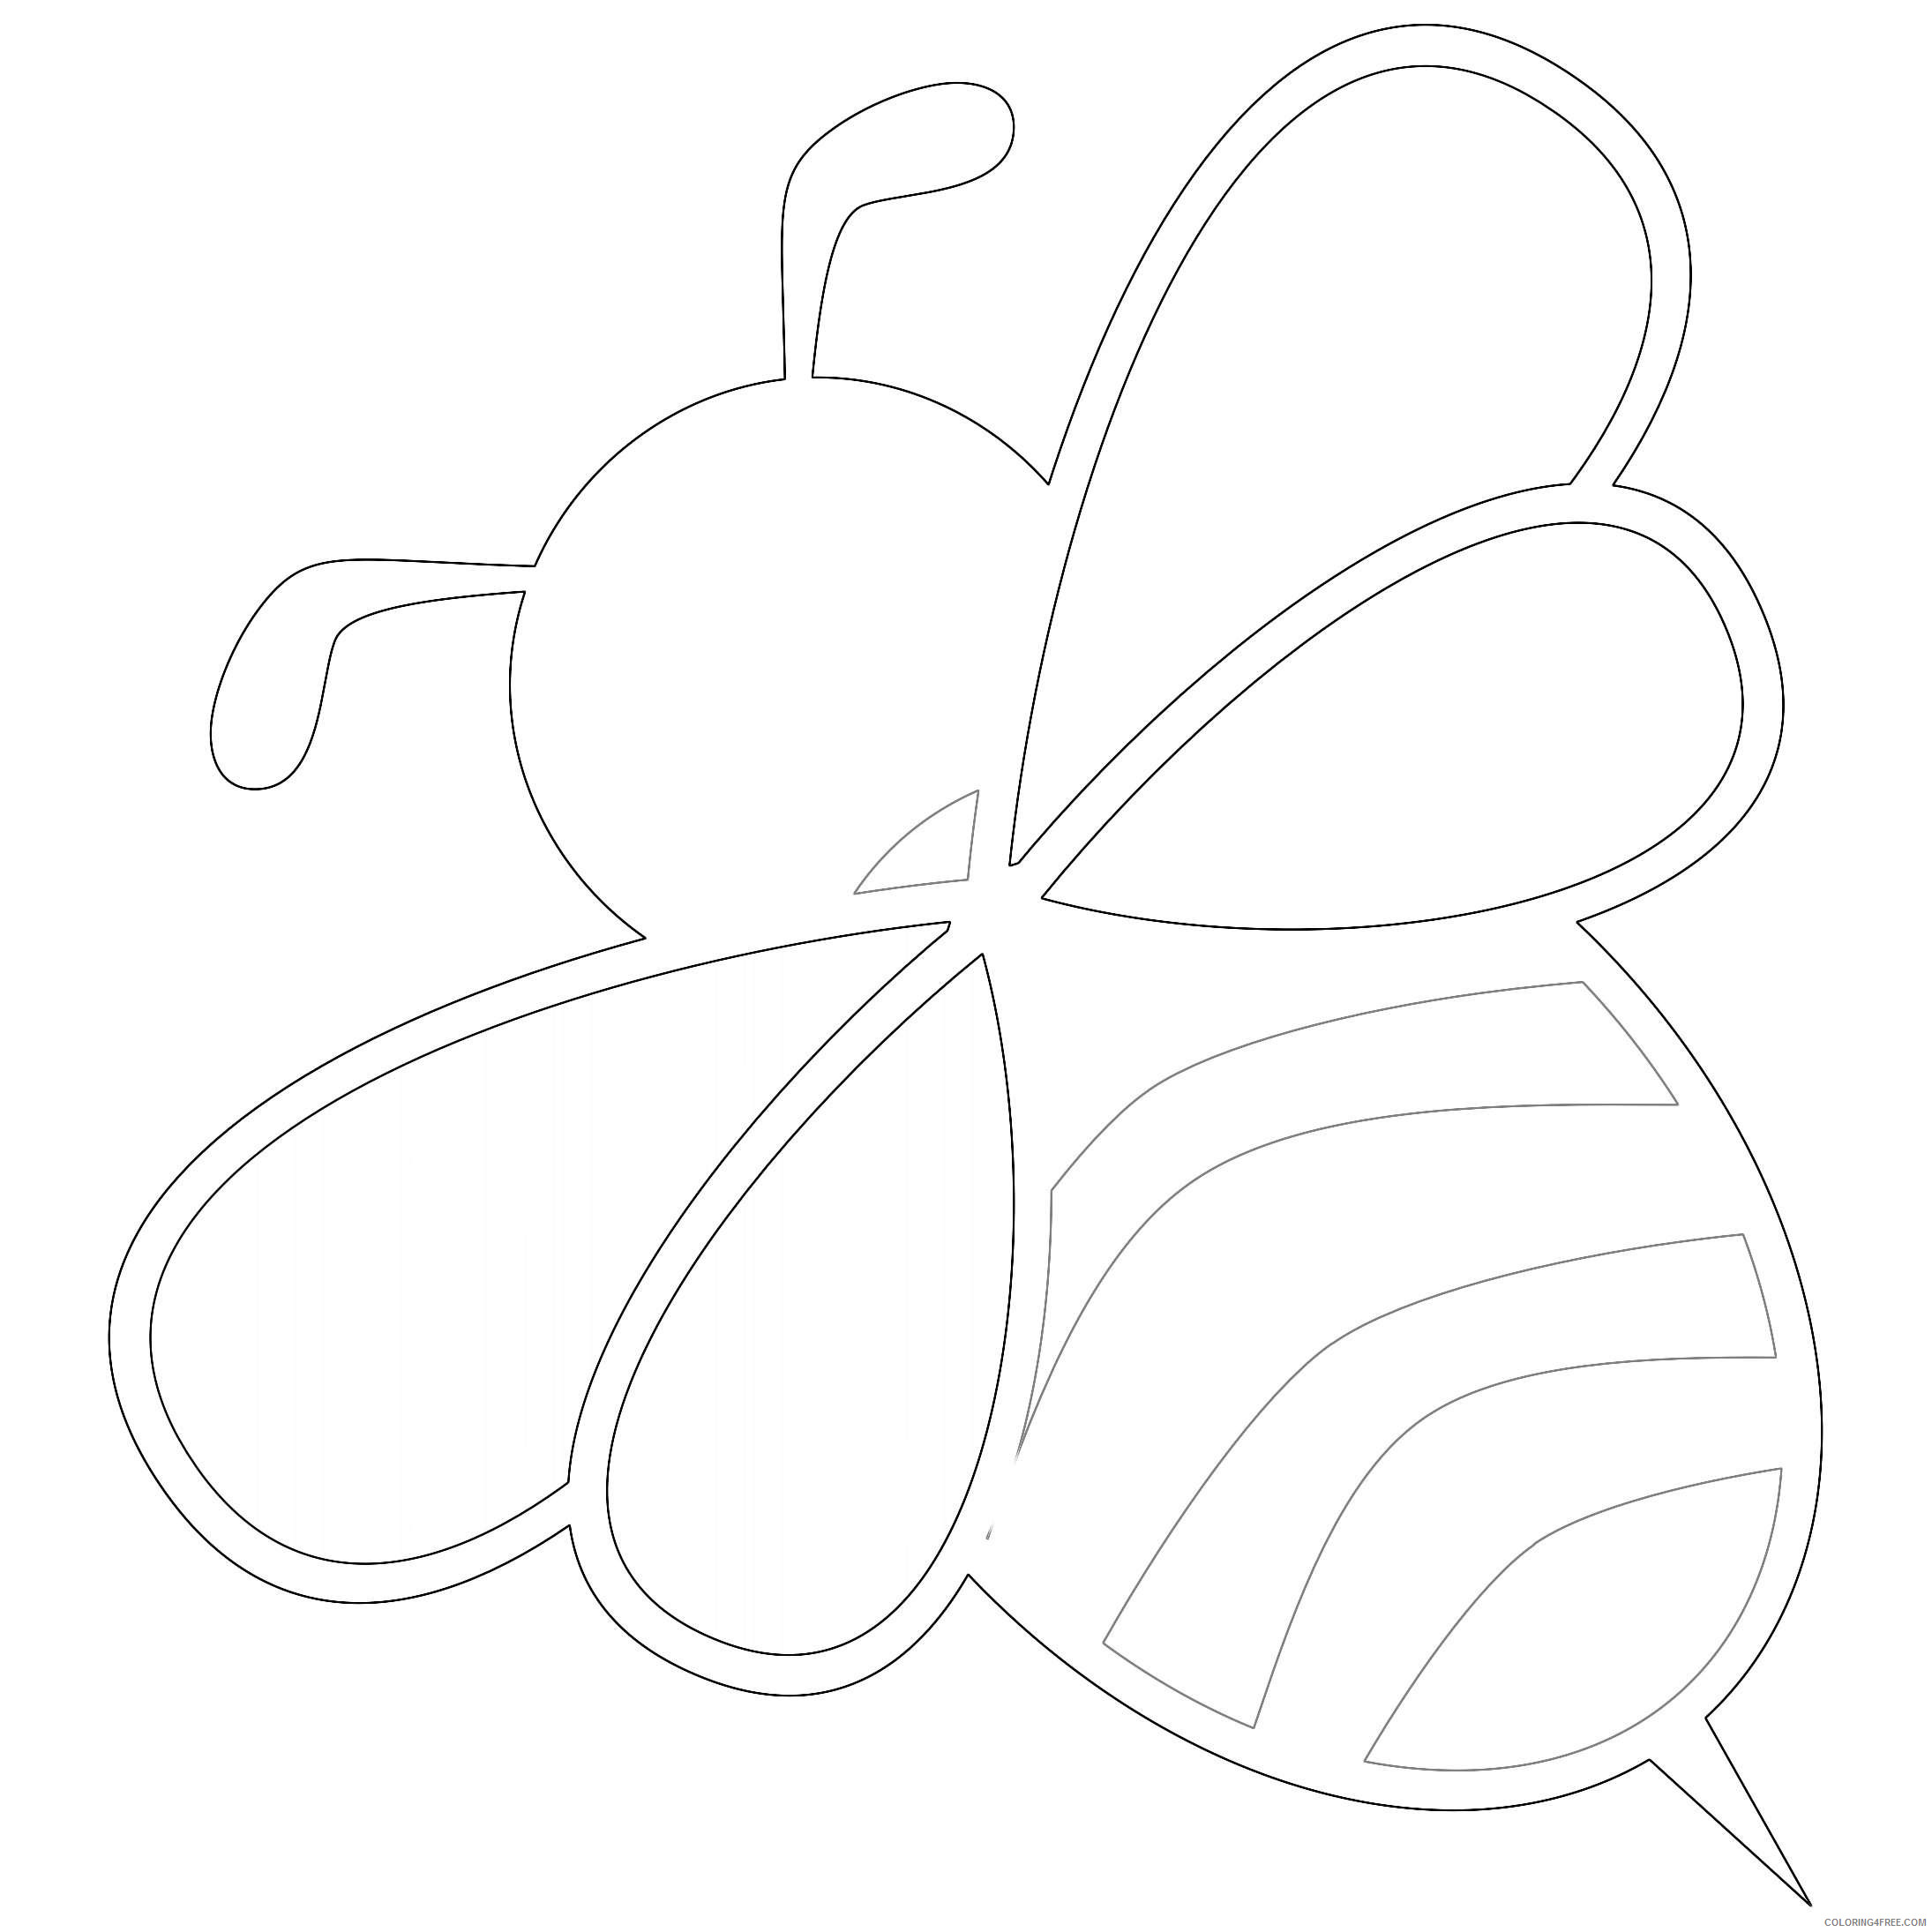 Bee Coloring Pages – coloring.rocks! | 2190x2190